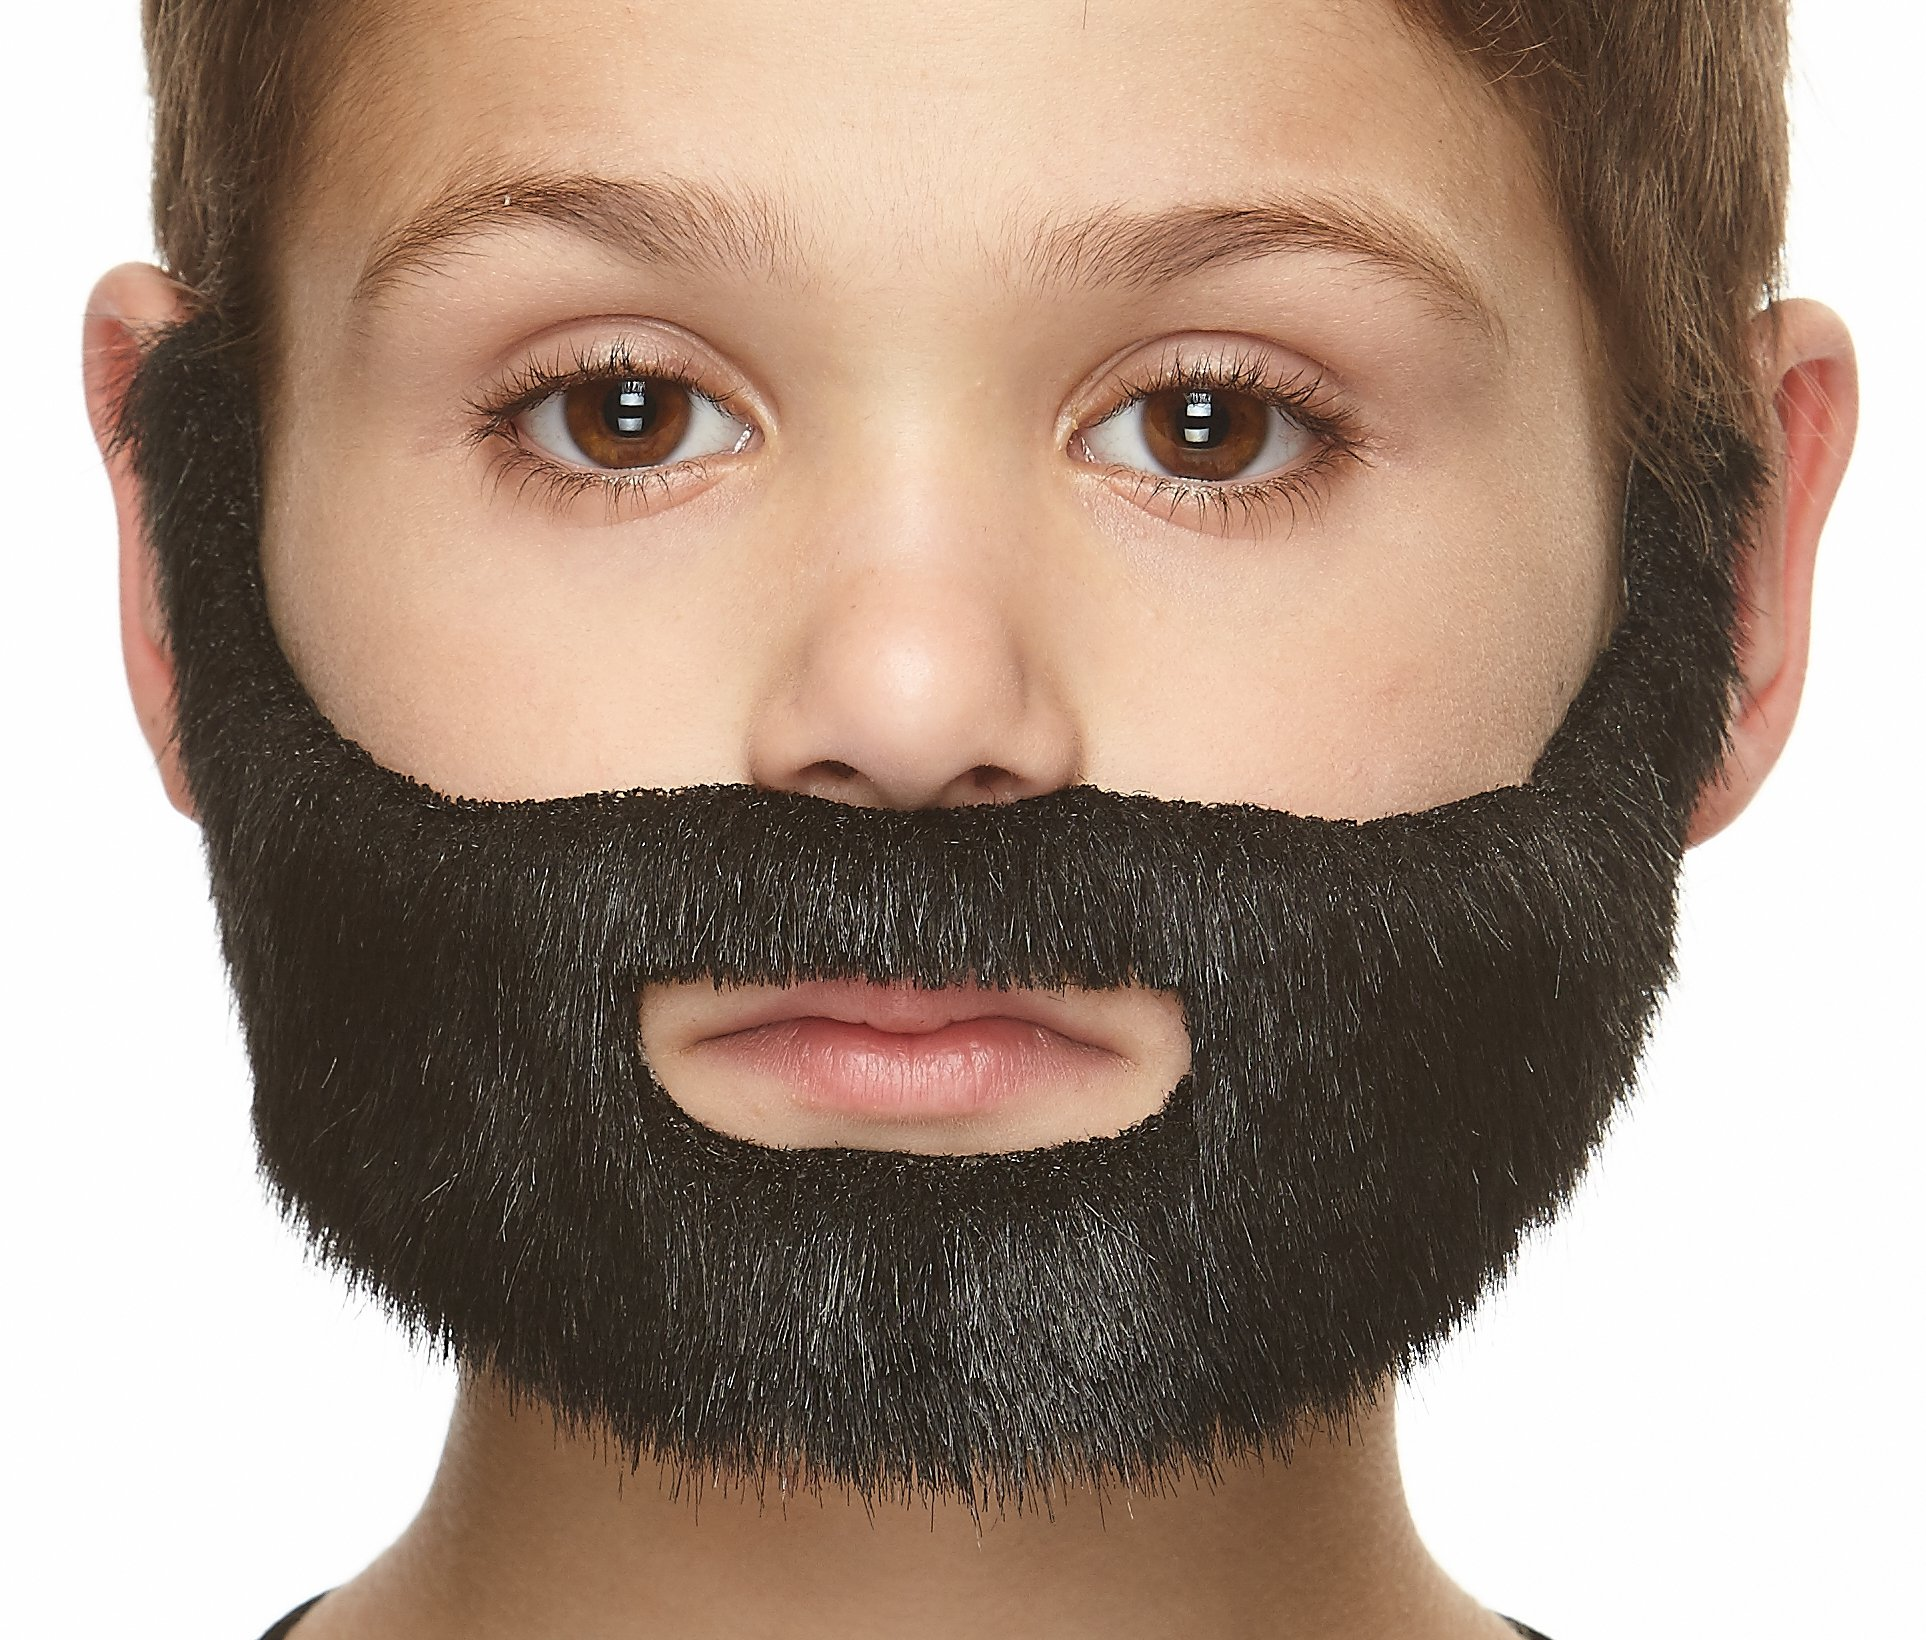 Mustaches Self Adhesive, Novelty, Fake, Small Nobleman Beard, Black Lustrous Color